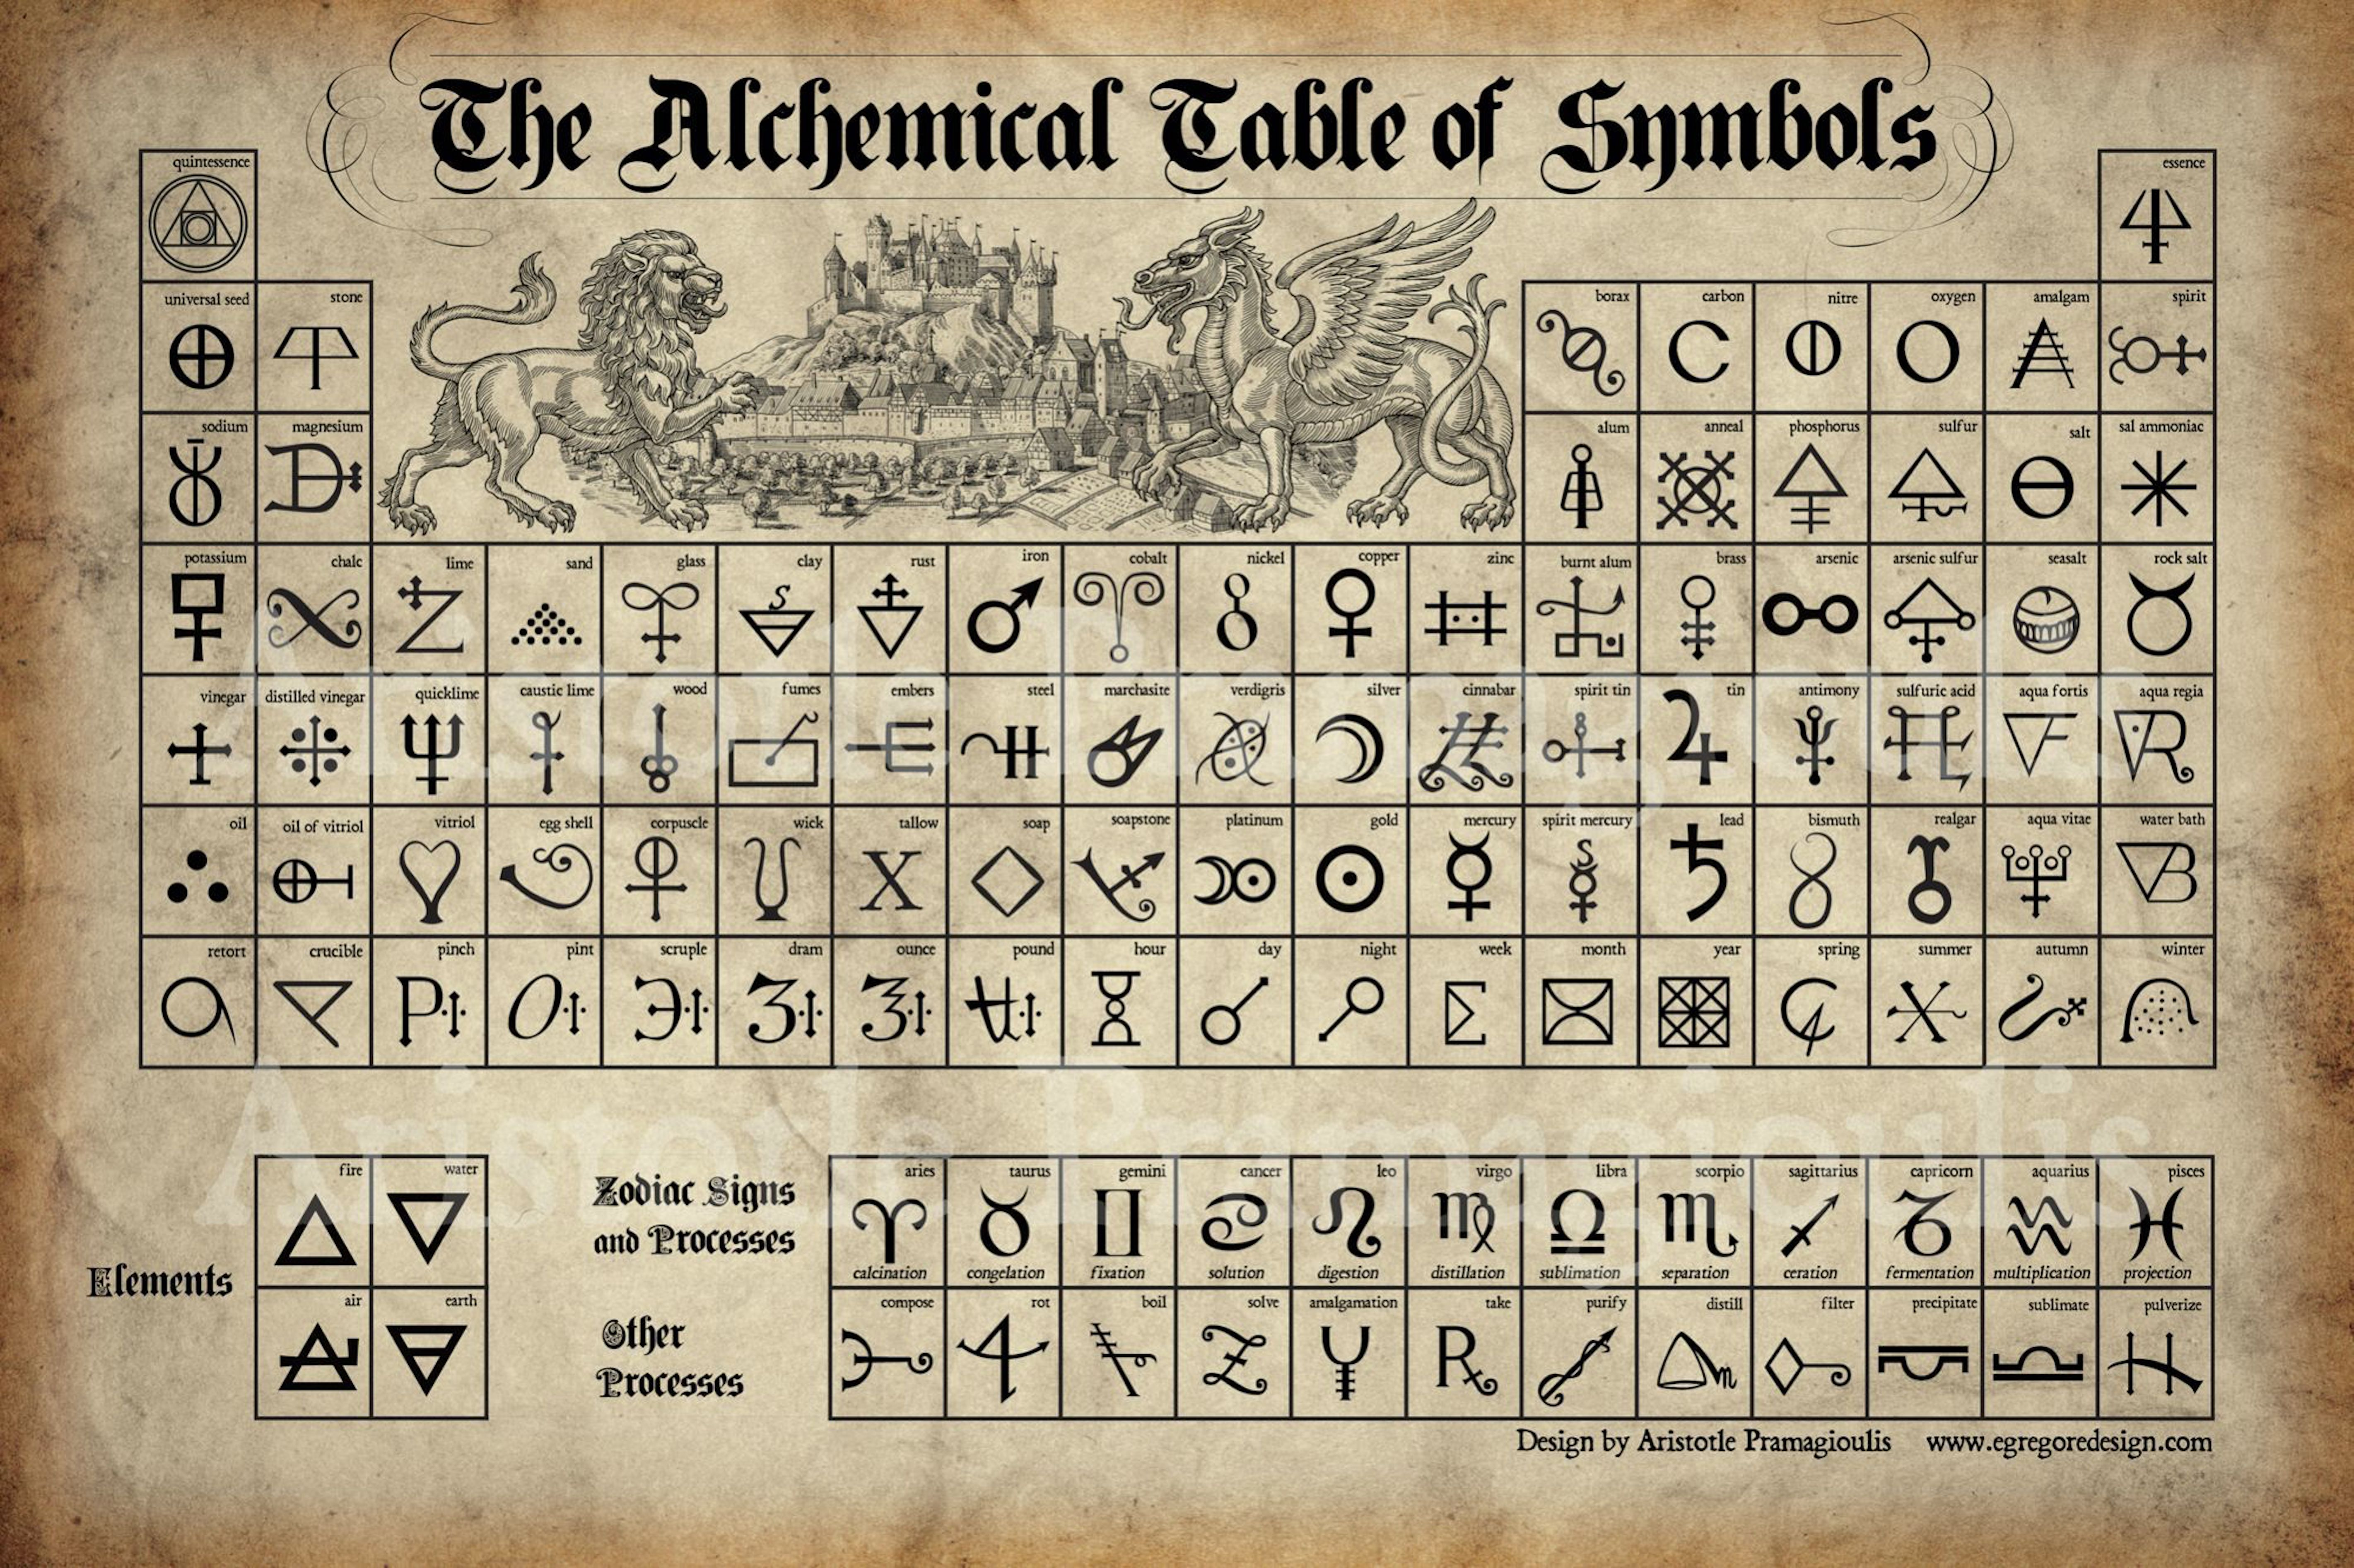 The Alchemical Table of Symbols (foto Pinterest)